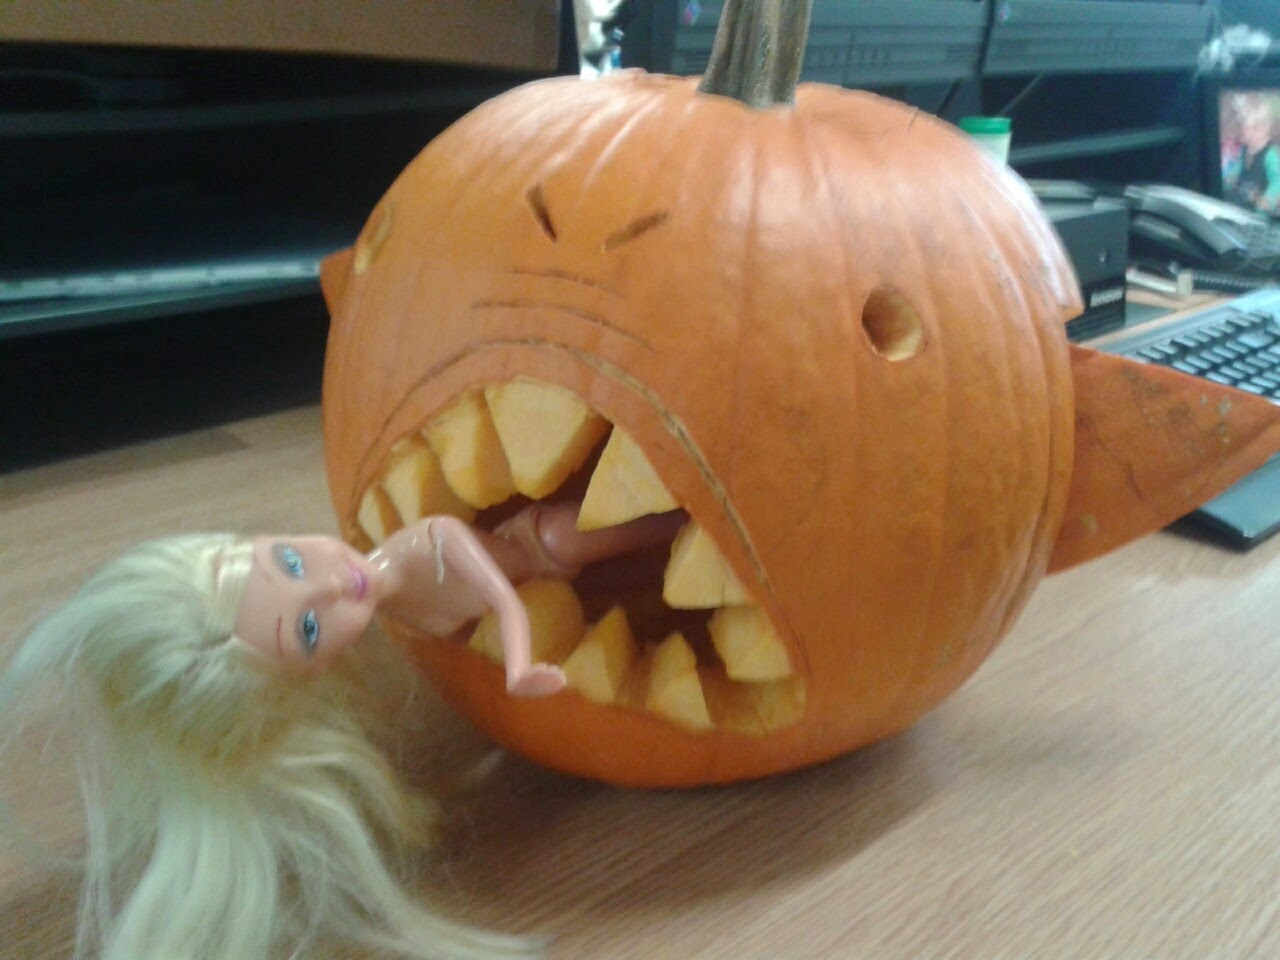 Pumpkin Carving Ideas for Halloween 2017: Most Awesome Pumpkin ...